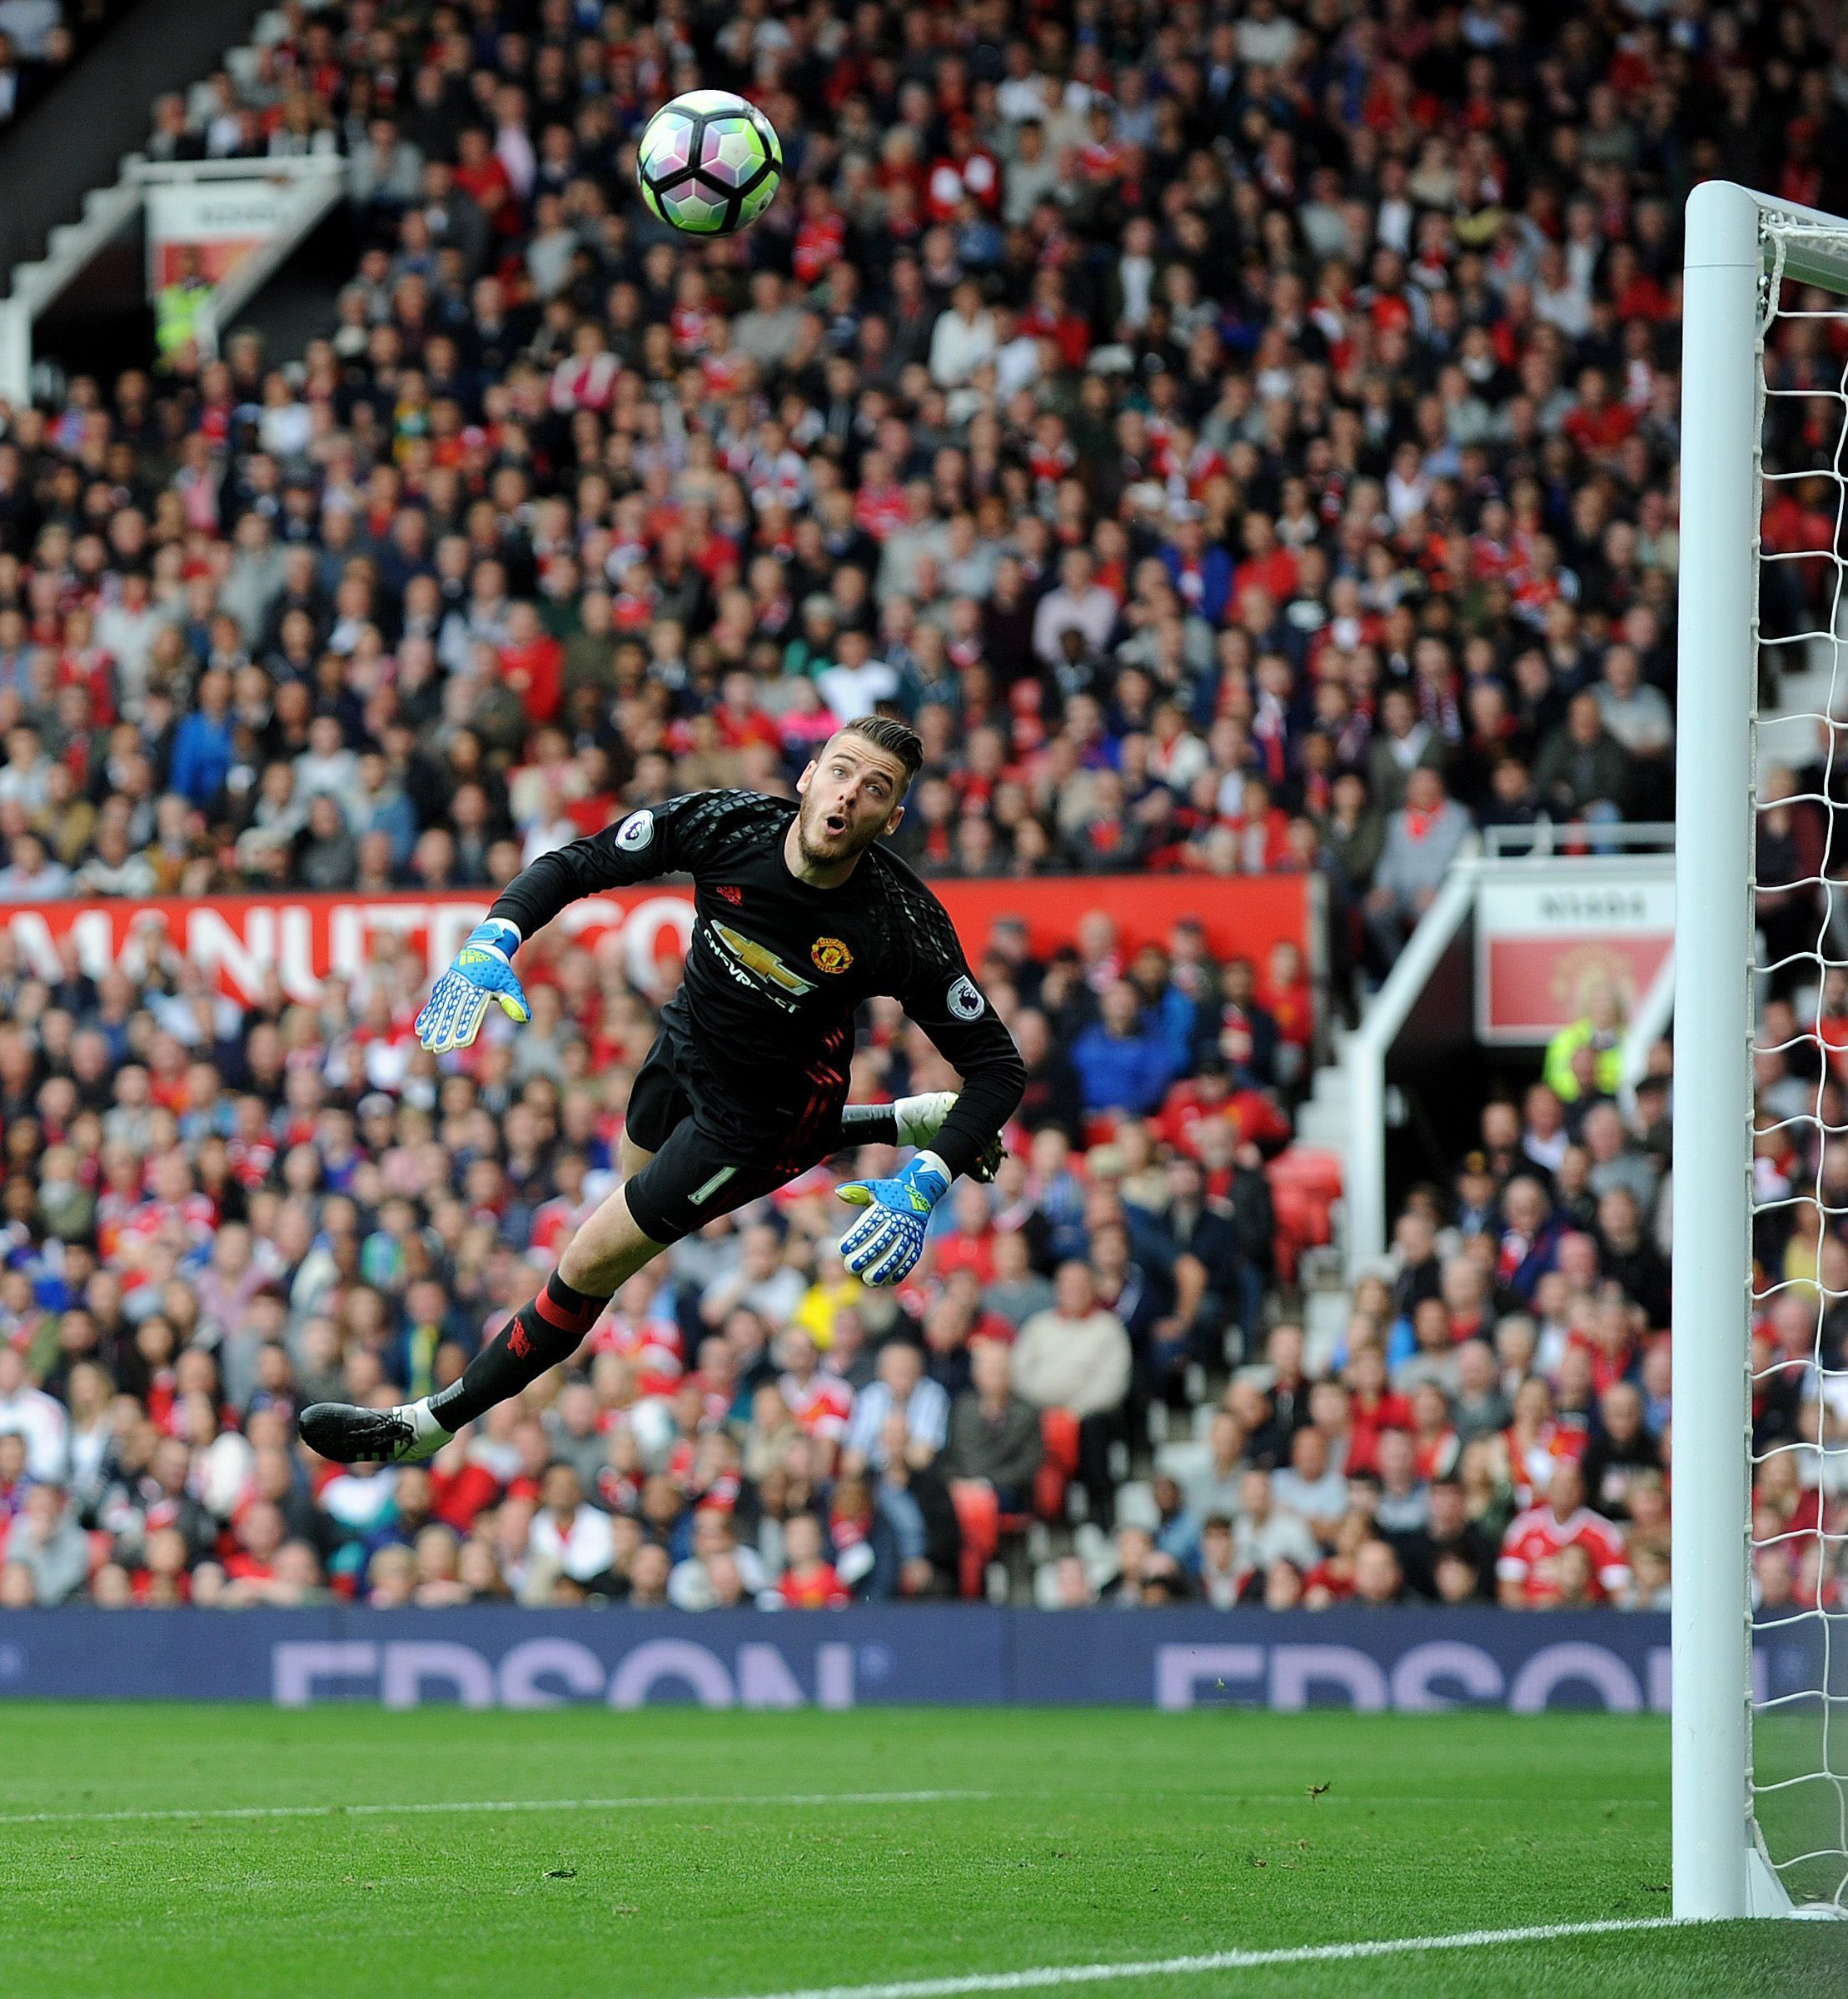 List of Best Manchester United Wallpapers De Gea Dave Saves.